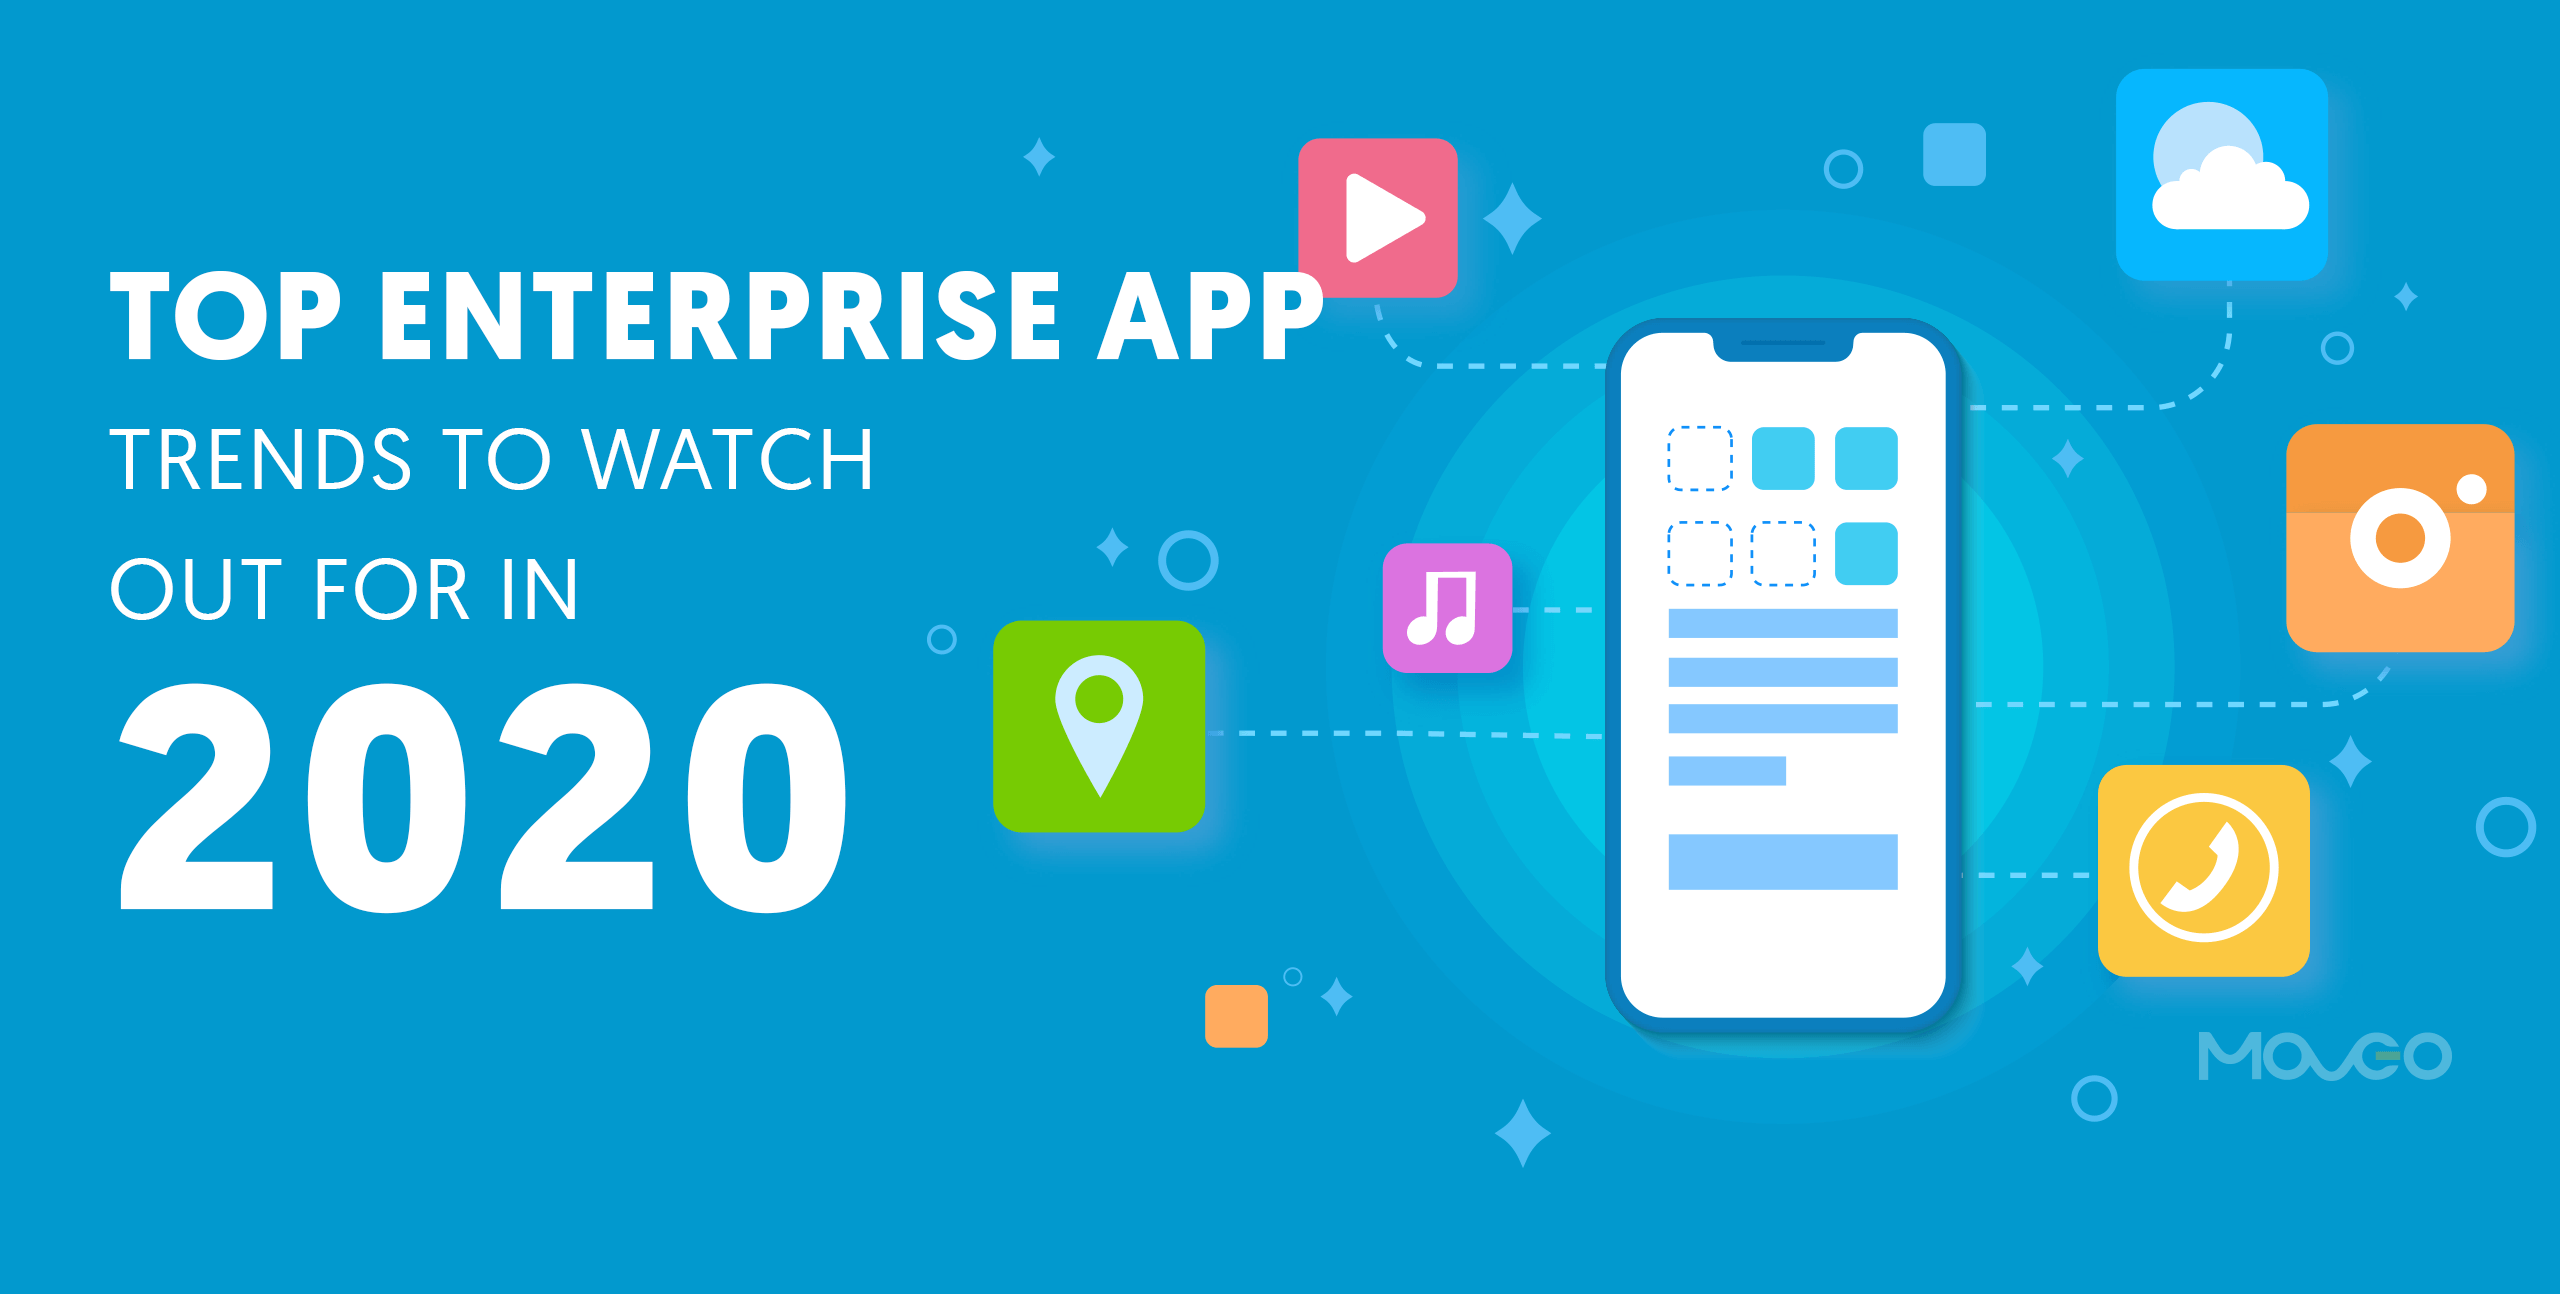 Top Enterprise App Trends to Watch Out For in 2020